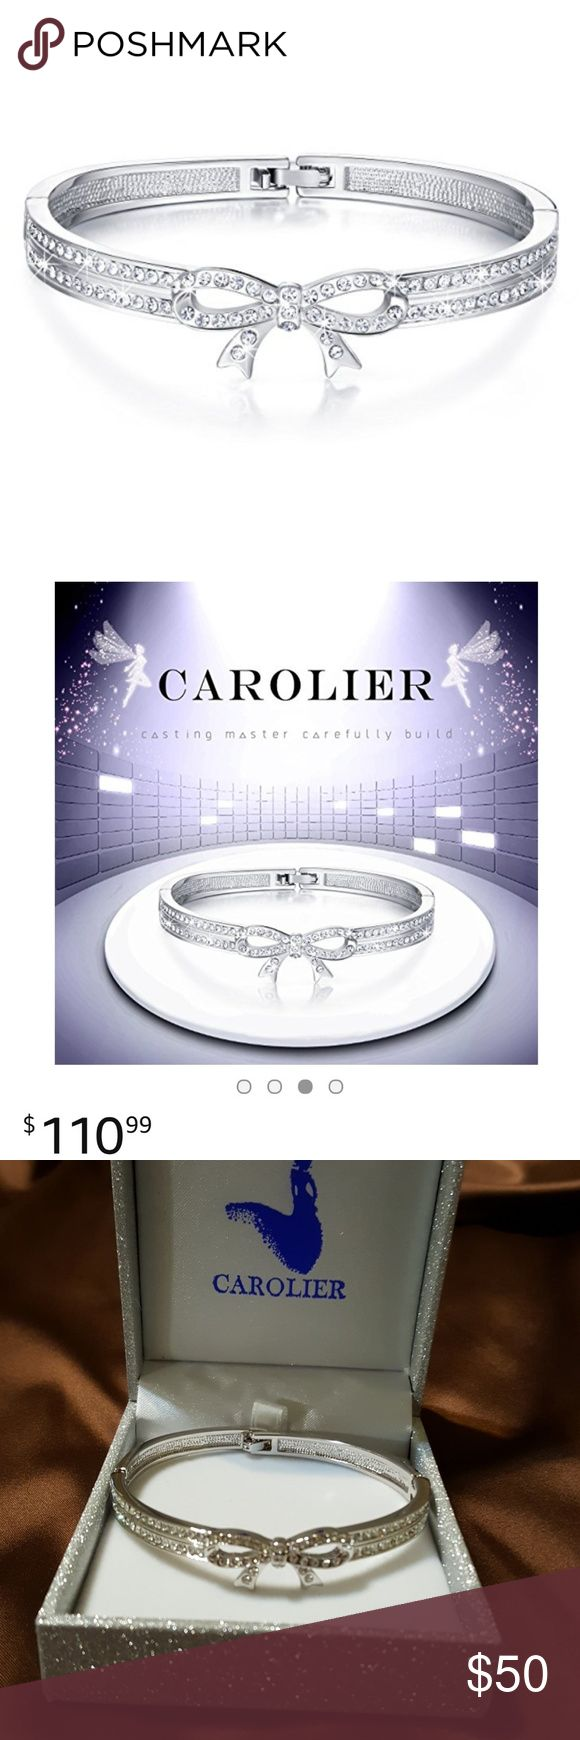 """New """"Carolier"""" Bow Tie Crystal Bangle Bracelet. Gorgeous Bow Tie bangle bracelet by Carolier. Stunning! Purchased from amazon.com for $110.99. Go to Amazon & look for yourself, they're still for sale. Rhodium, White Gold Plated, Zinc Alloy. Lead & nickle free. Crystals from Swarovski. Bangle measures 7"""" in circumference. Tongue & groove clasp. Son bought it for his g/f, decided to get her a Pandora instead. waited too long to return it. UGH! Trying to get some of his $ back for him. Look on…"""